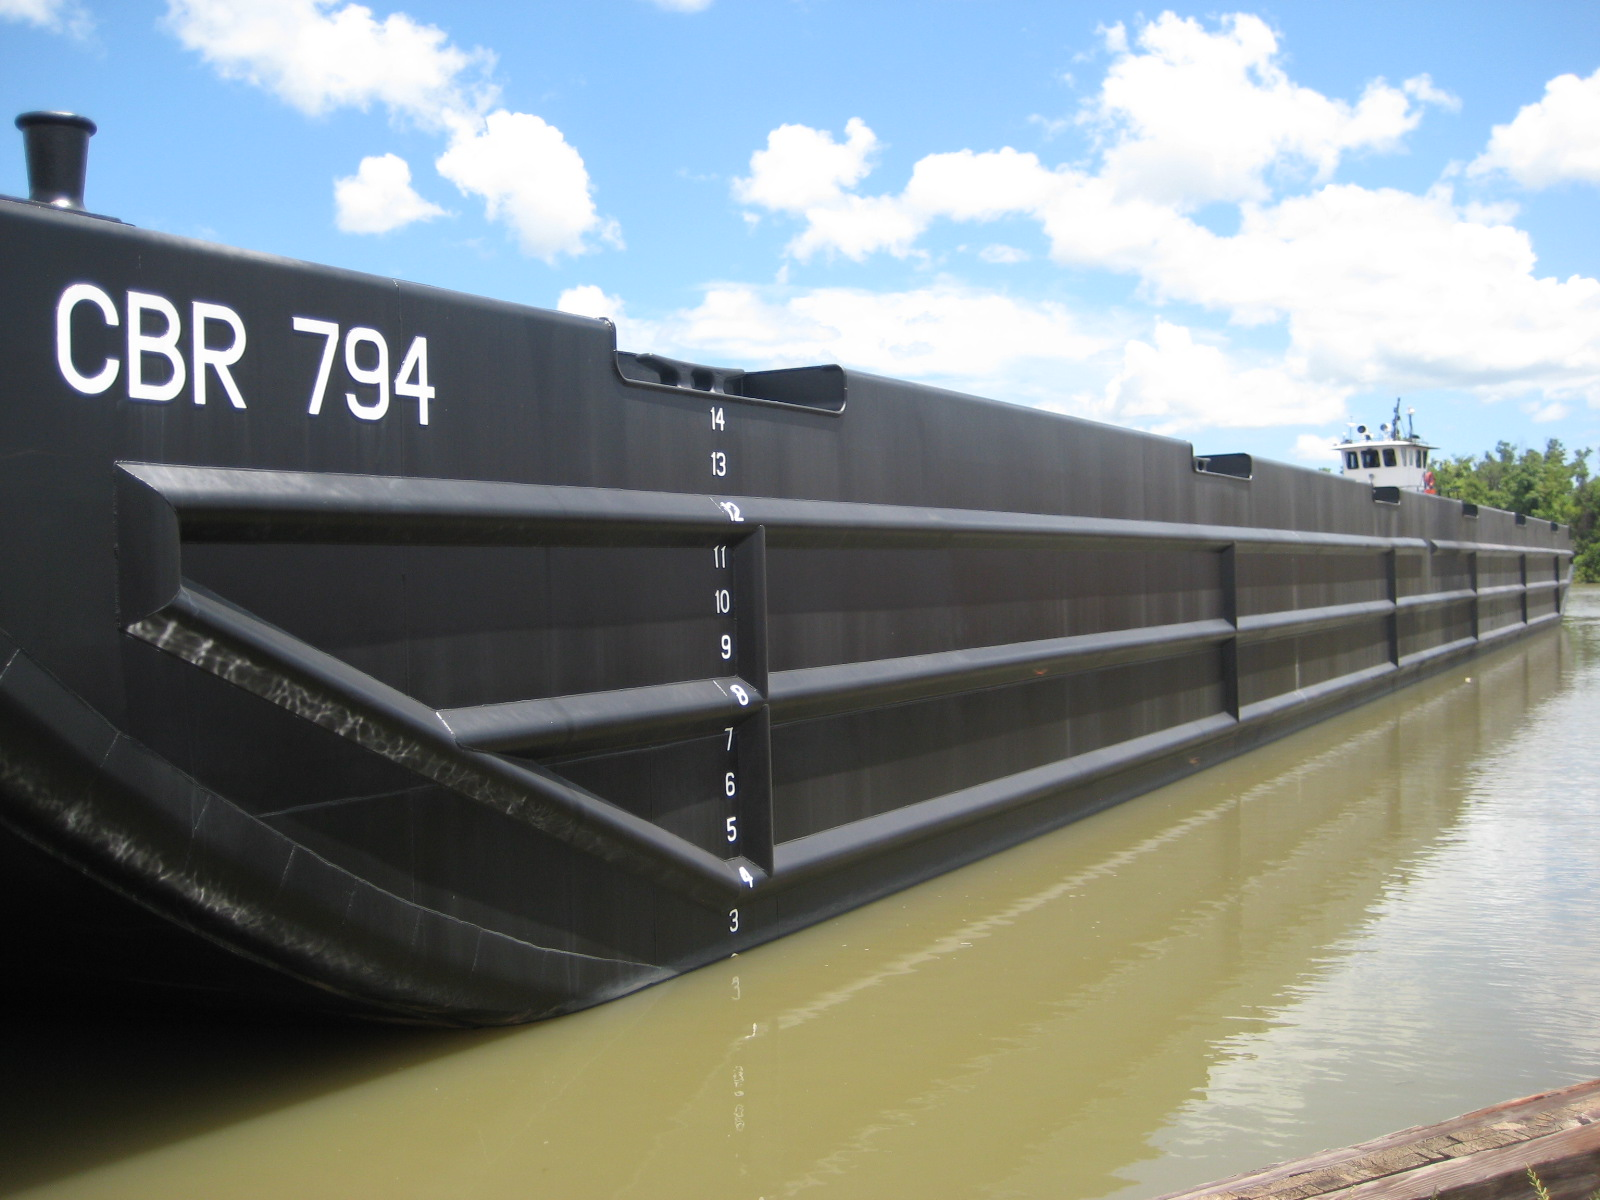 260' X 72' STEEL DECK BARGE